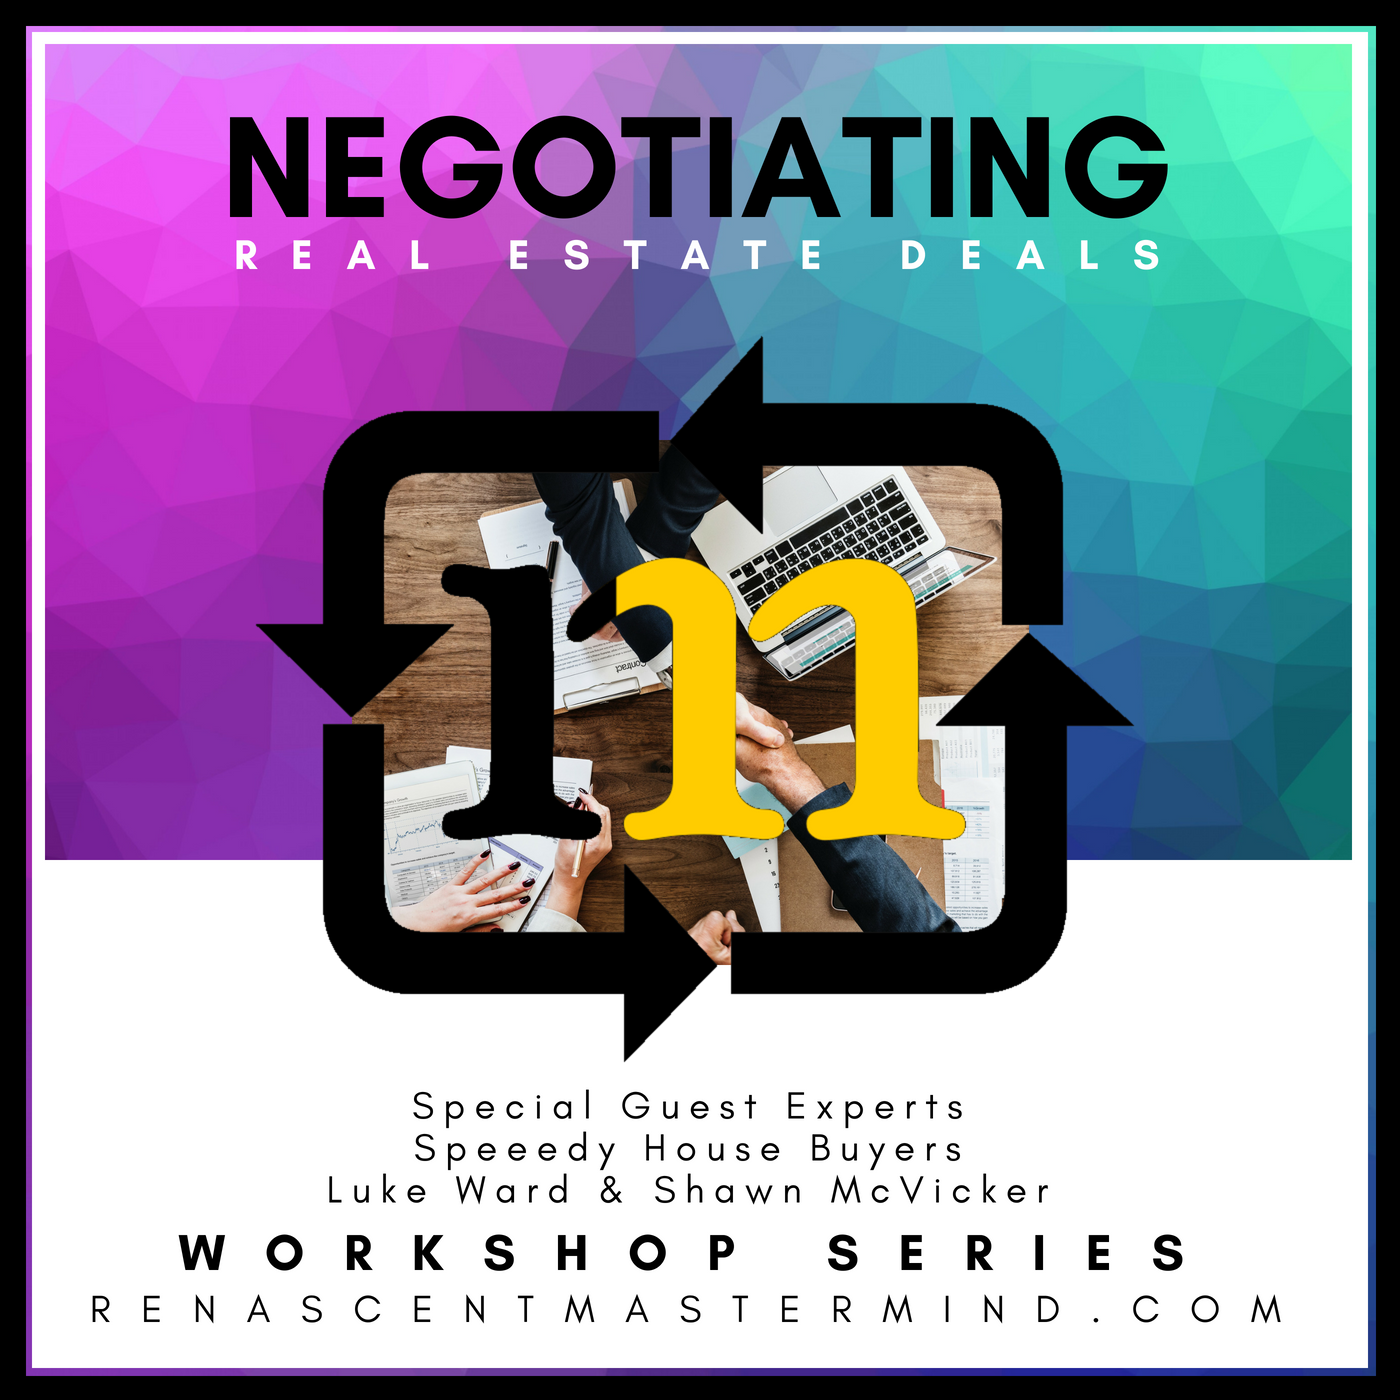 Negotiating Real Estate Deals | Workshop Series with special guest experts Speeedy House Buyerswith Luke Ward & Shawn McVicker